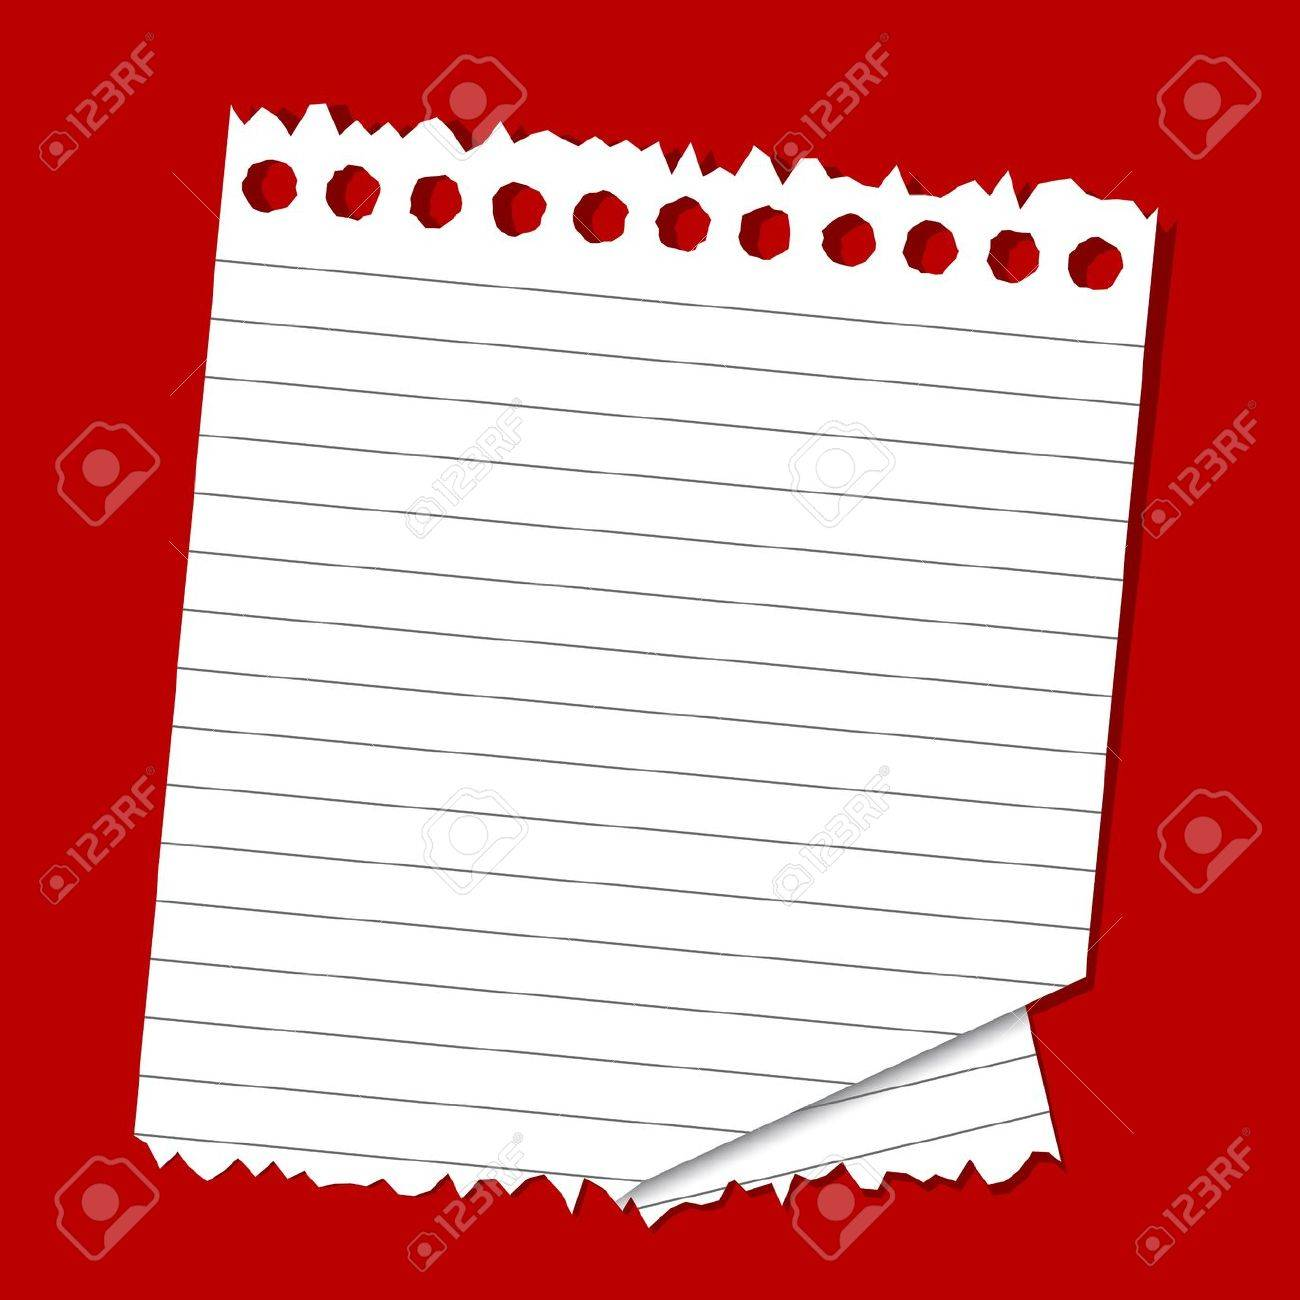 illustration of lined paper on plain red background Stock Vector - 13379005